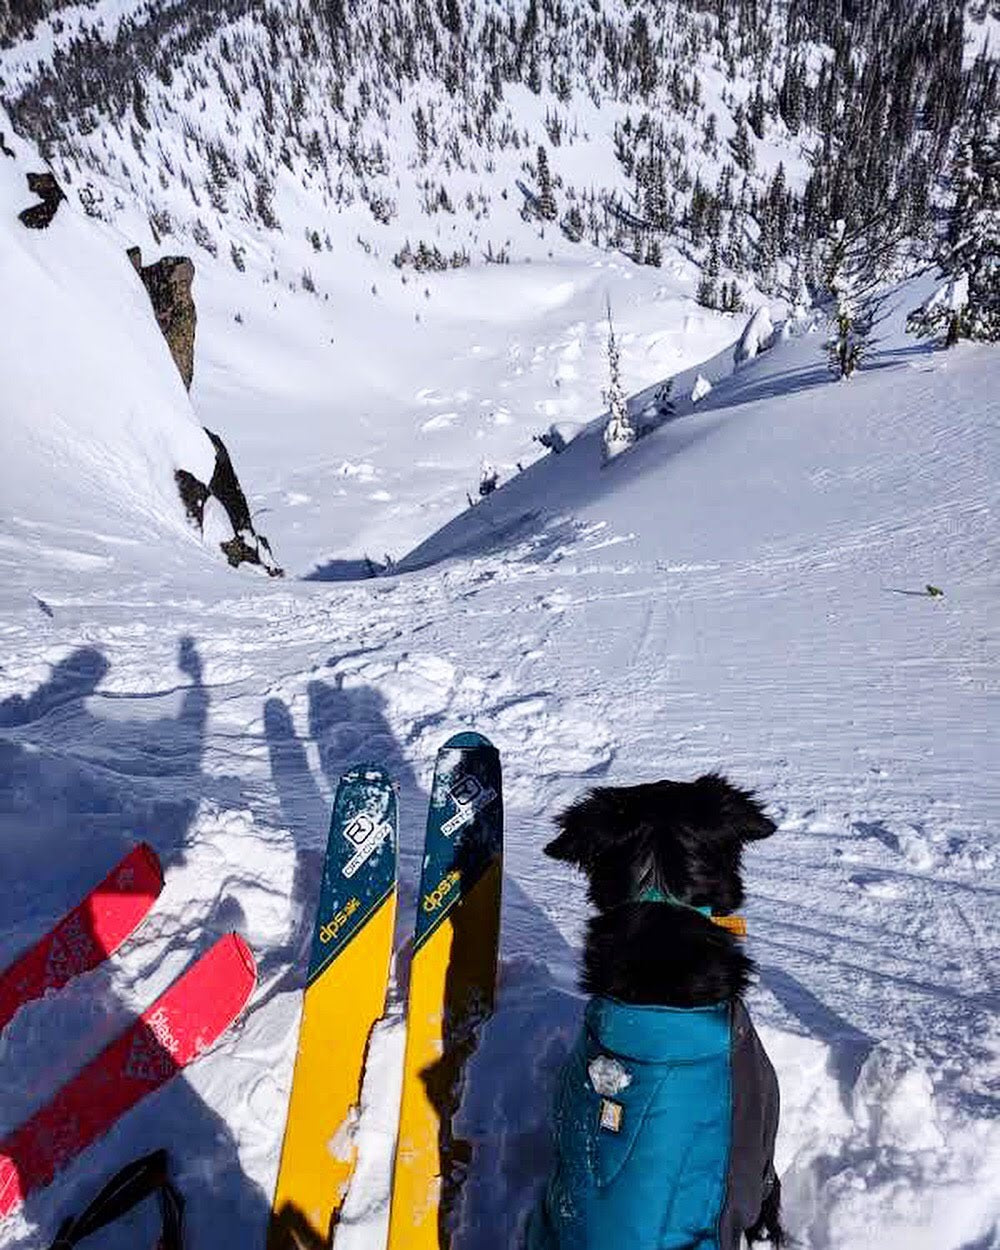 Alli and Riggins about to ski at the top of a steep chute.